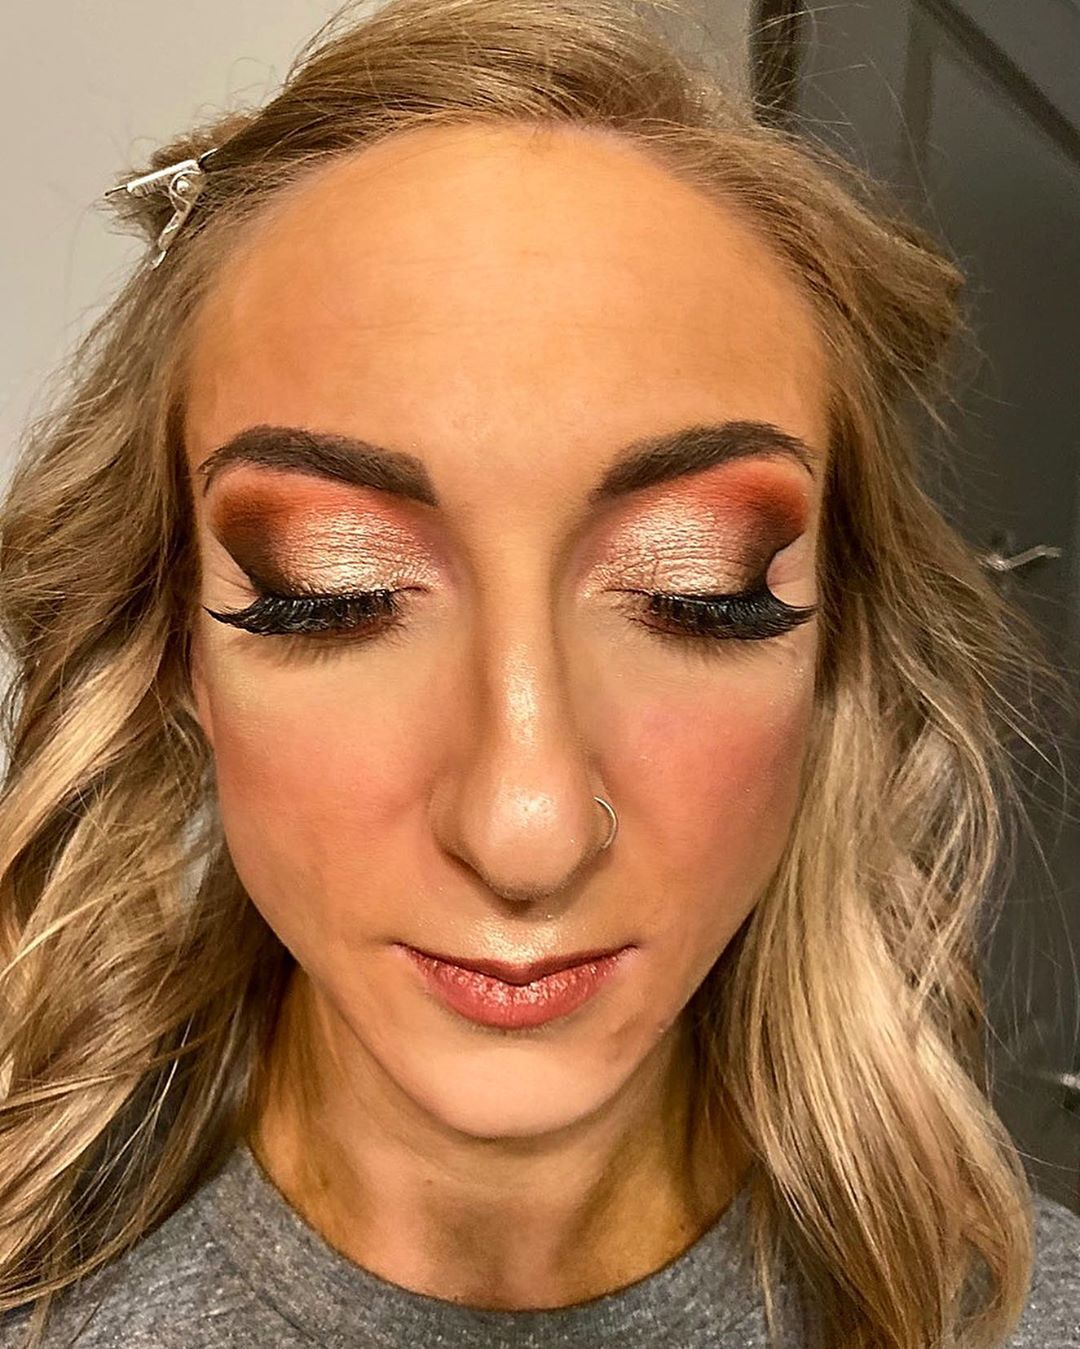 Makeup On This Beauty For The Lee Haney Games Makeup Artist Mua Leehaney Npc Showday Looks Showdaymakeup Las Day Makeup Beauty Lee Haney